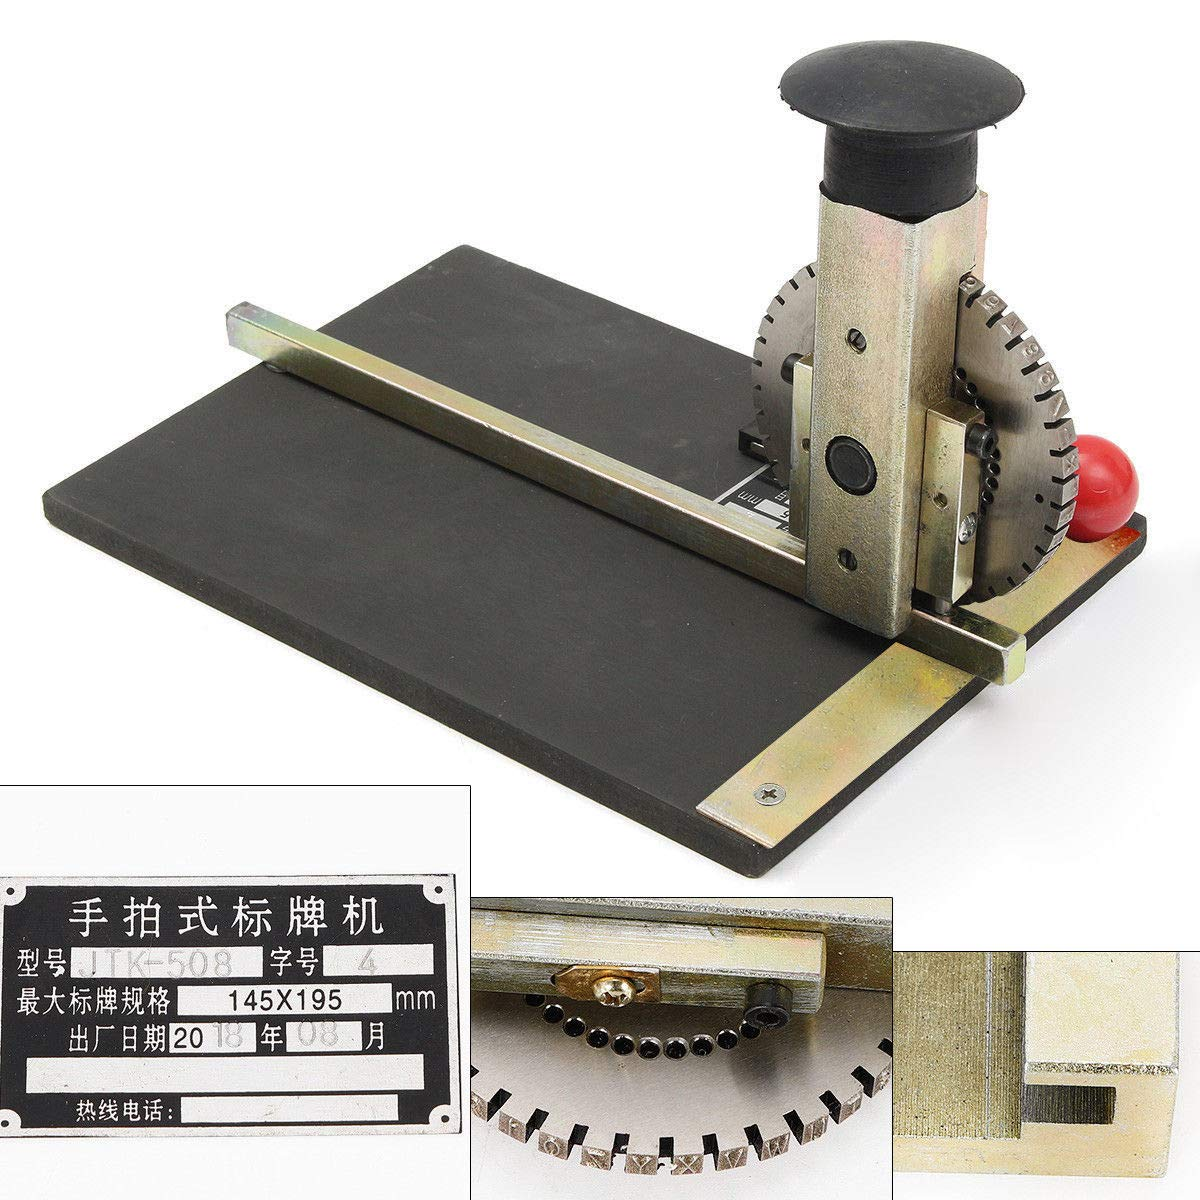 Manual Embossing Machine,Metal Embosser Alphanumeric Plate Stamping Dog Tag Embossing Marking Machine Printer with 2.0mm-5.0mm Print Wheel